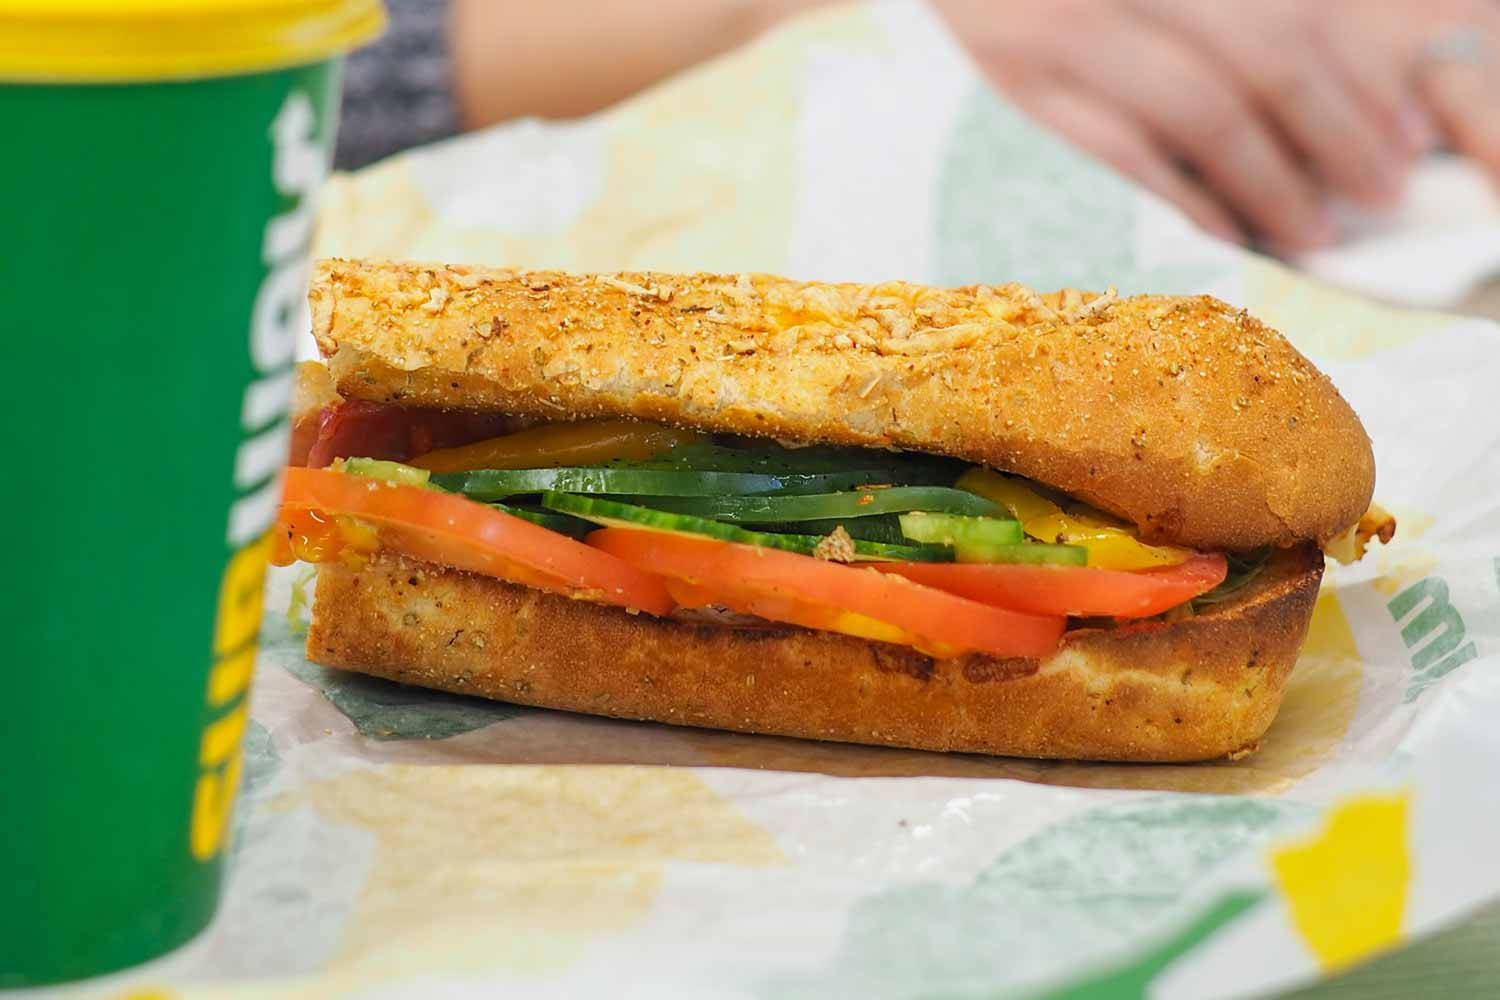 Subway Sandwich with tomatoes and cucumber, laying on wrapper beside a Subway brand cup